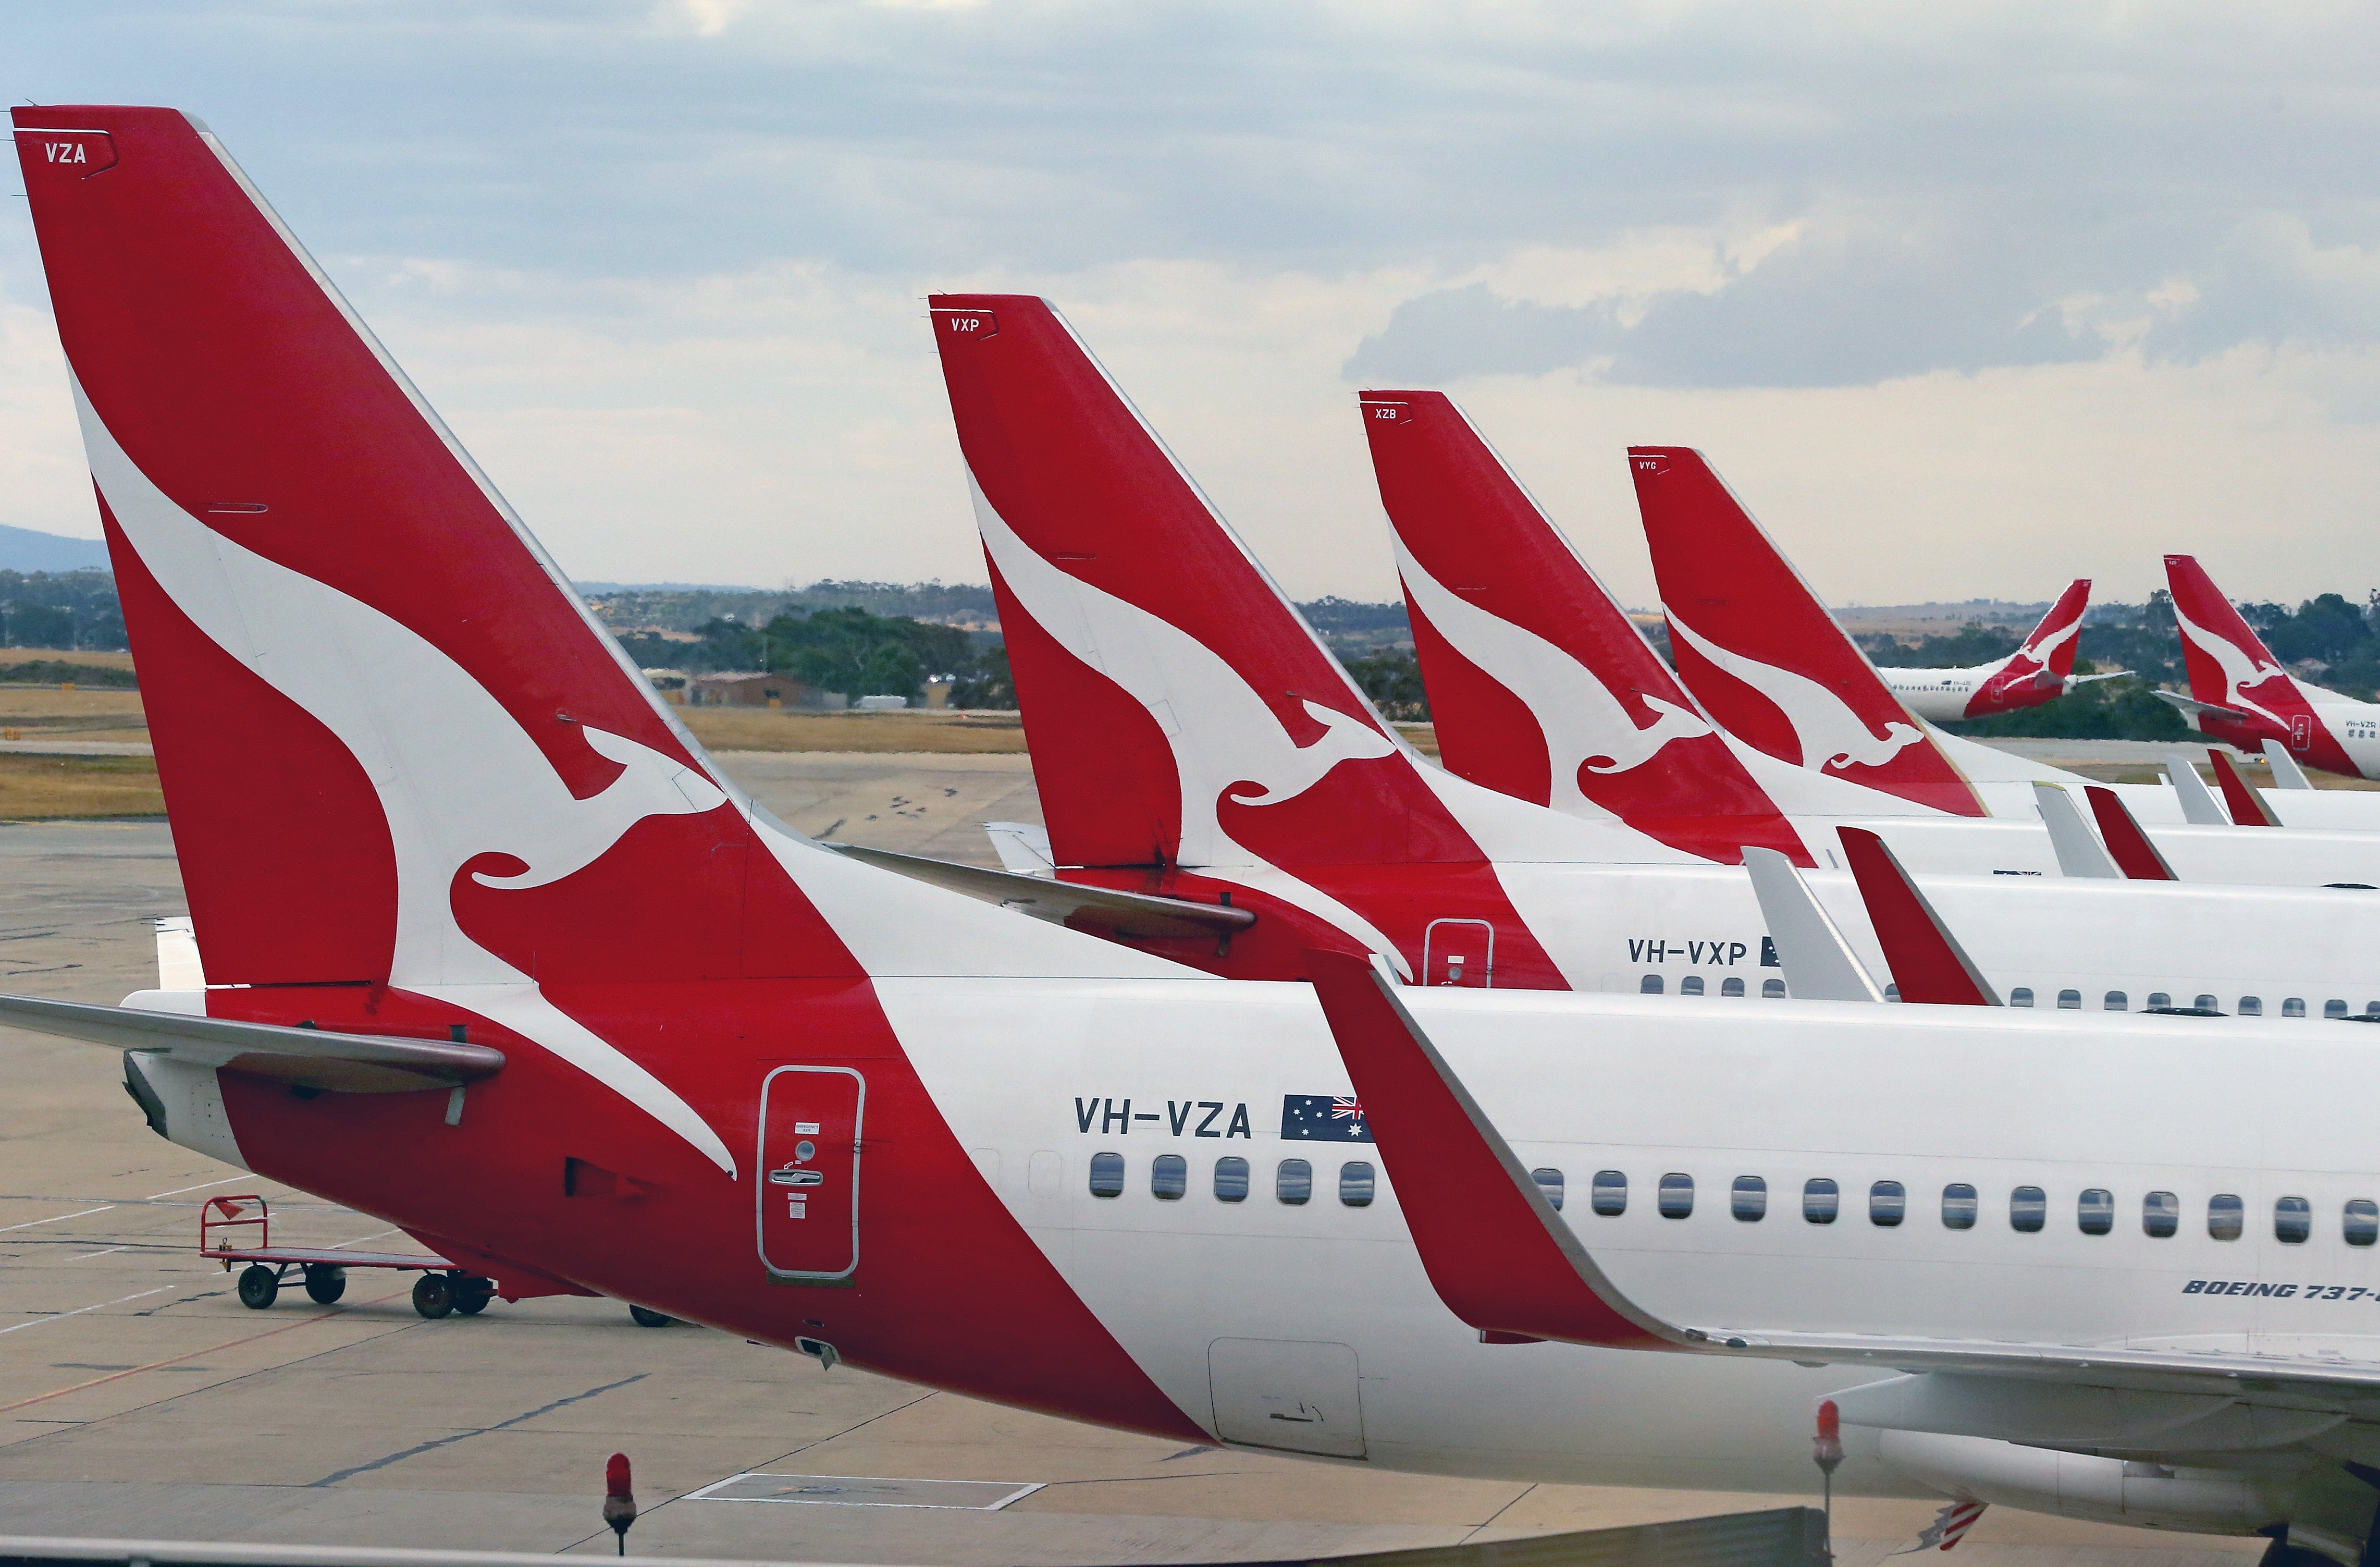 New 17.5-Hour Flight From Australia To London Will Be The Longest In The World